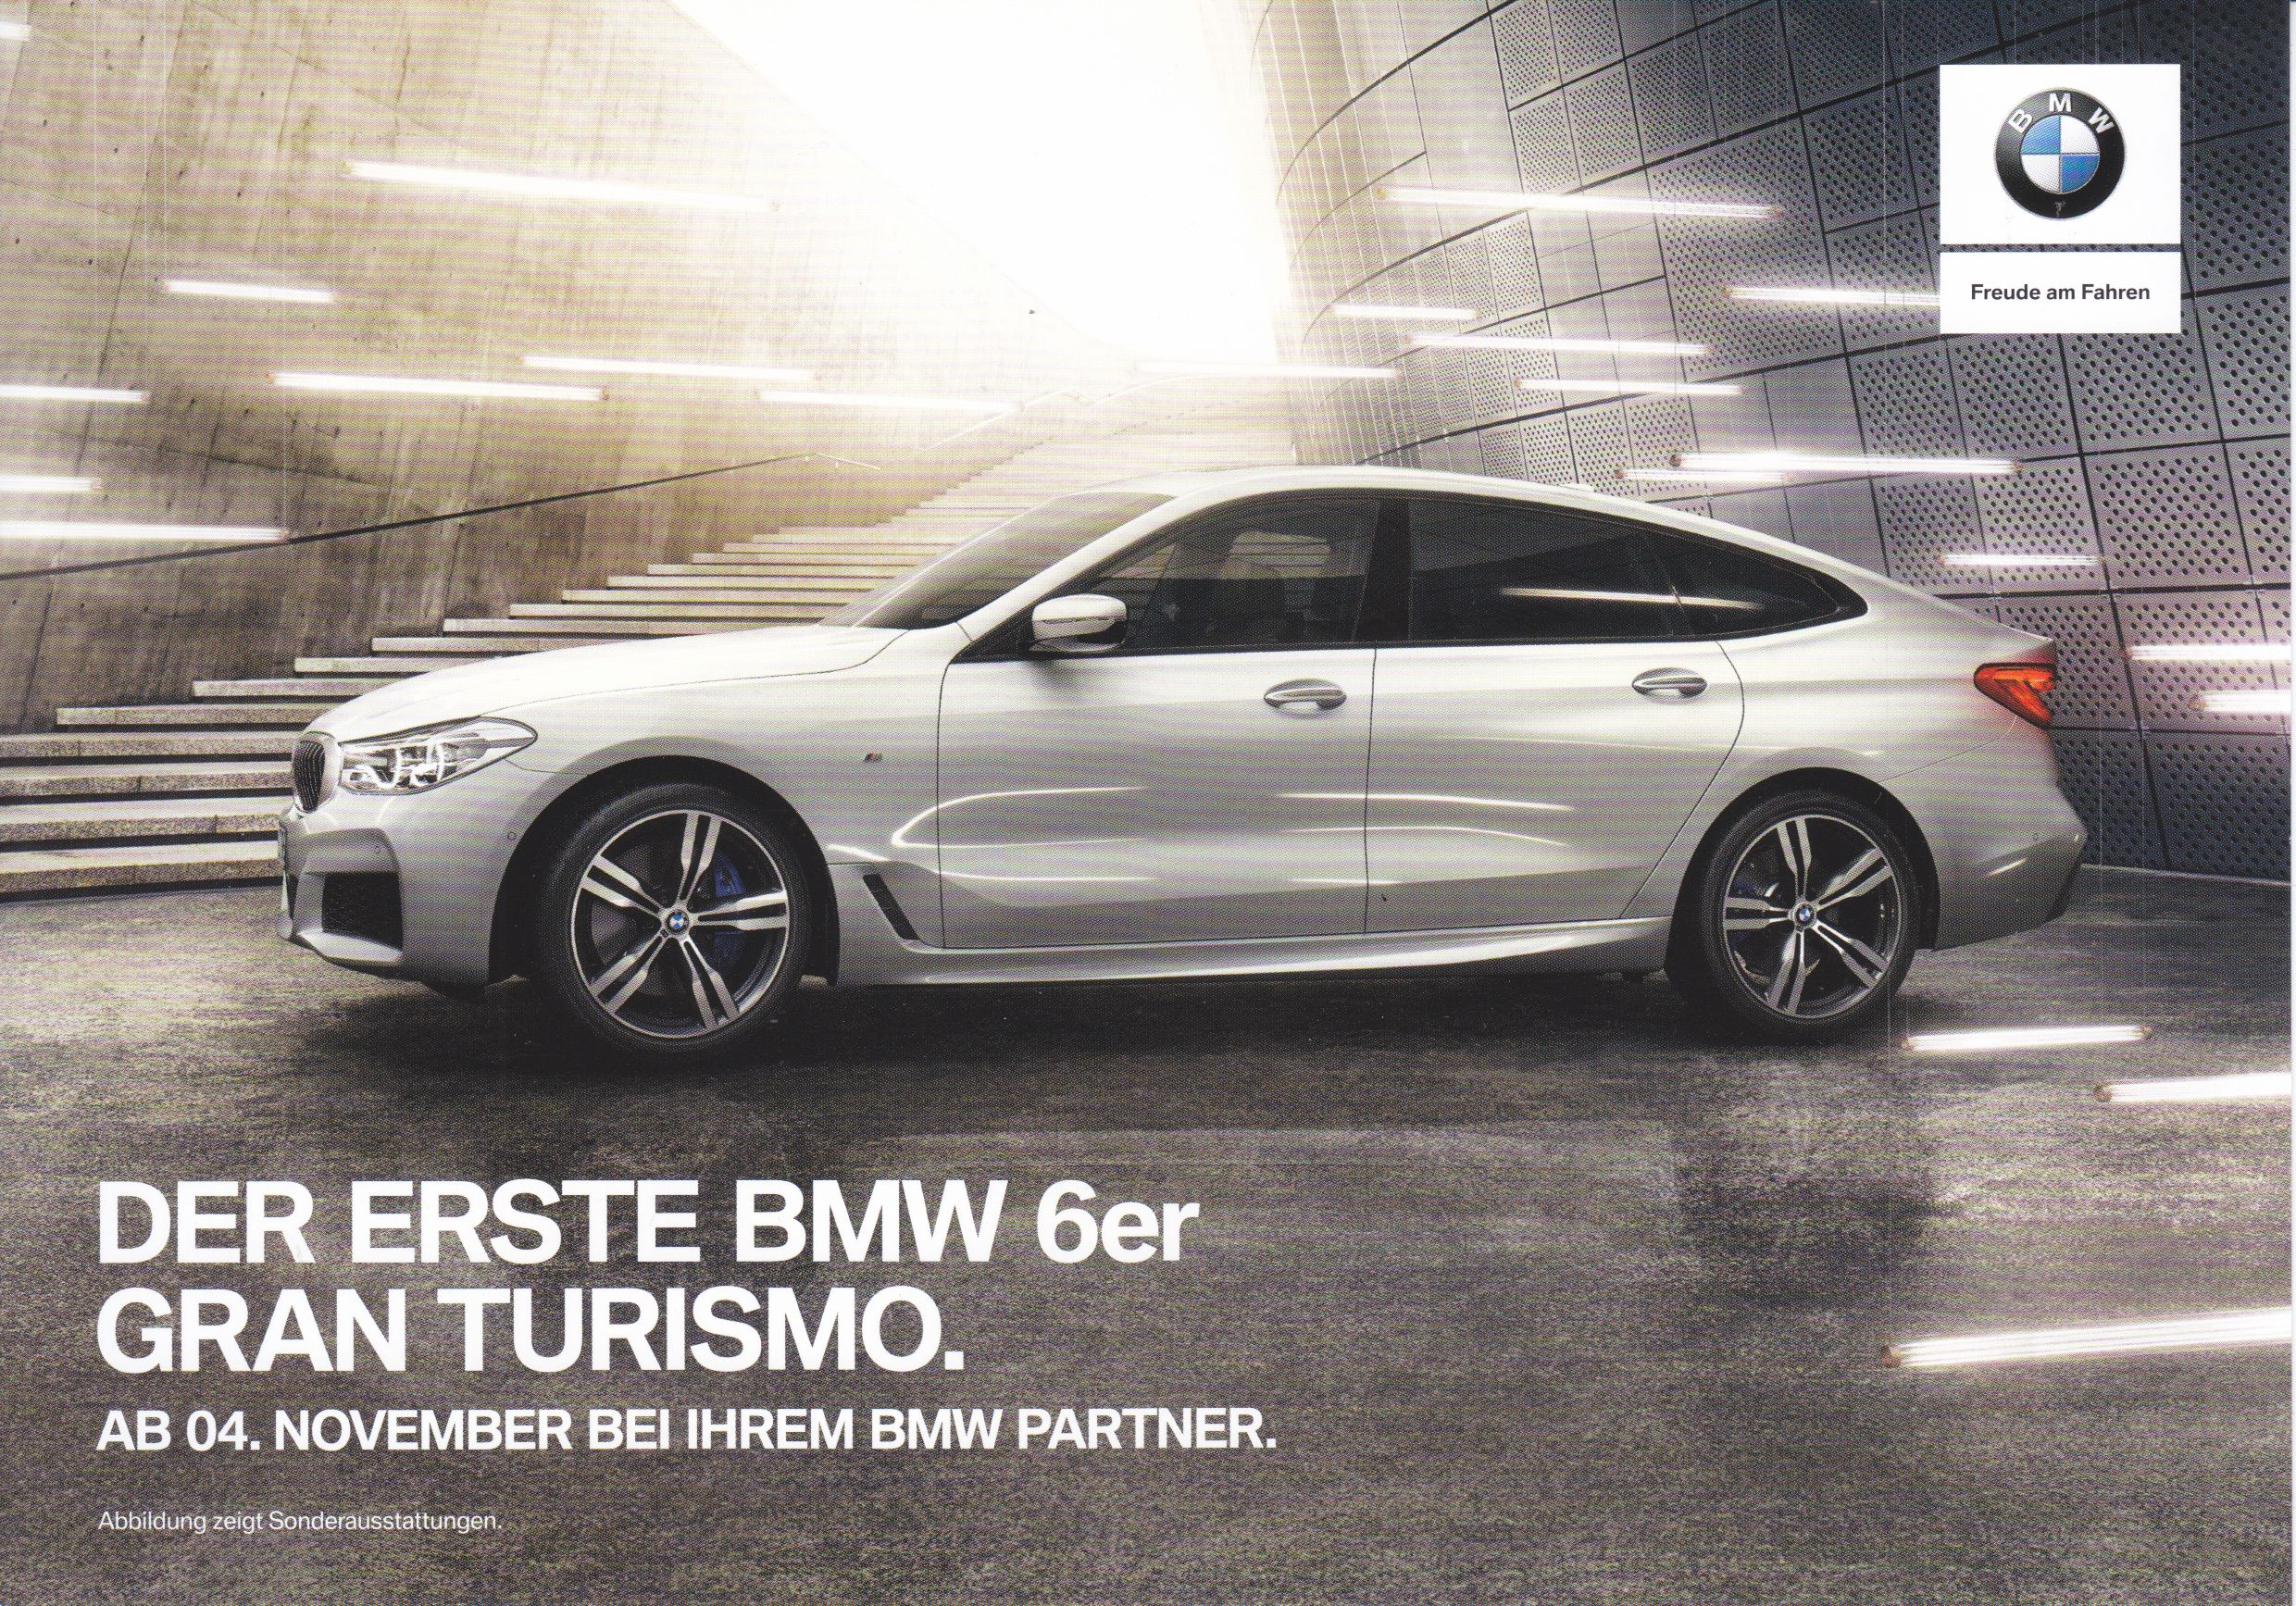 Bmw 6 Series Gt Fact Card Double Sided A5 Format German Bmw 6